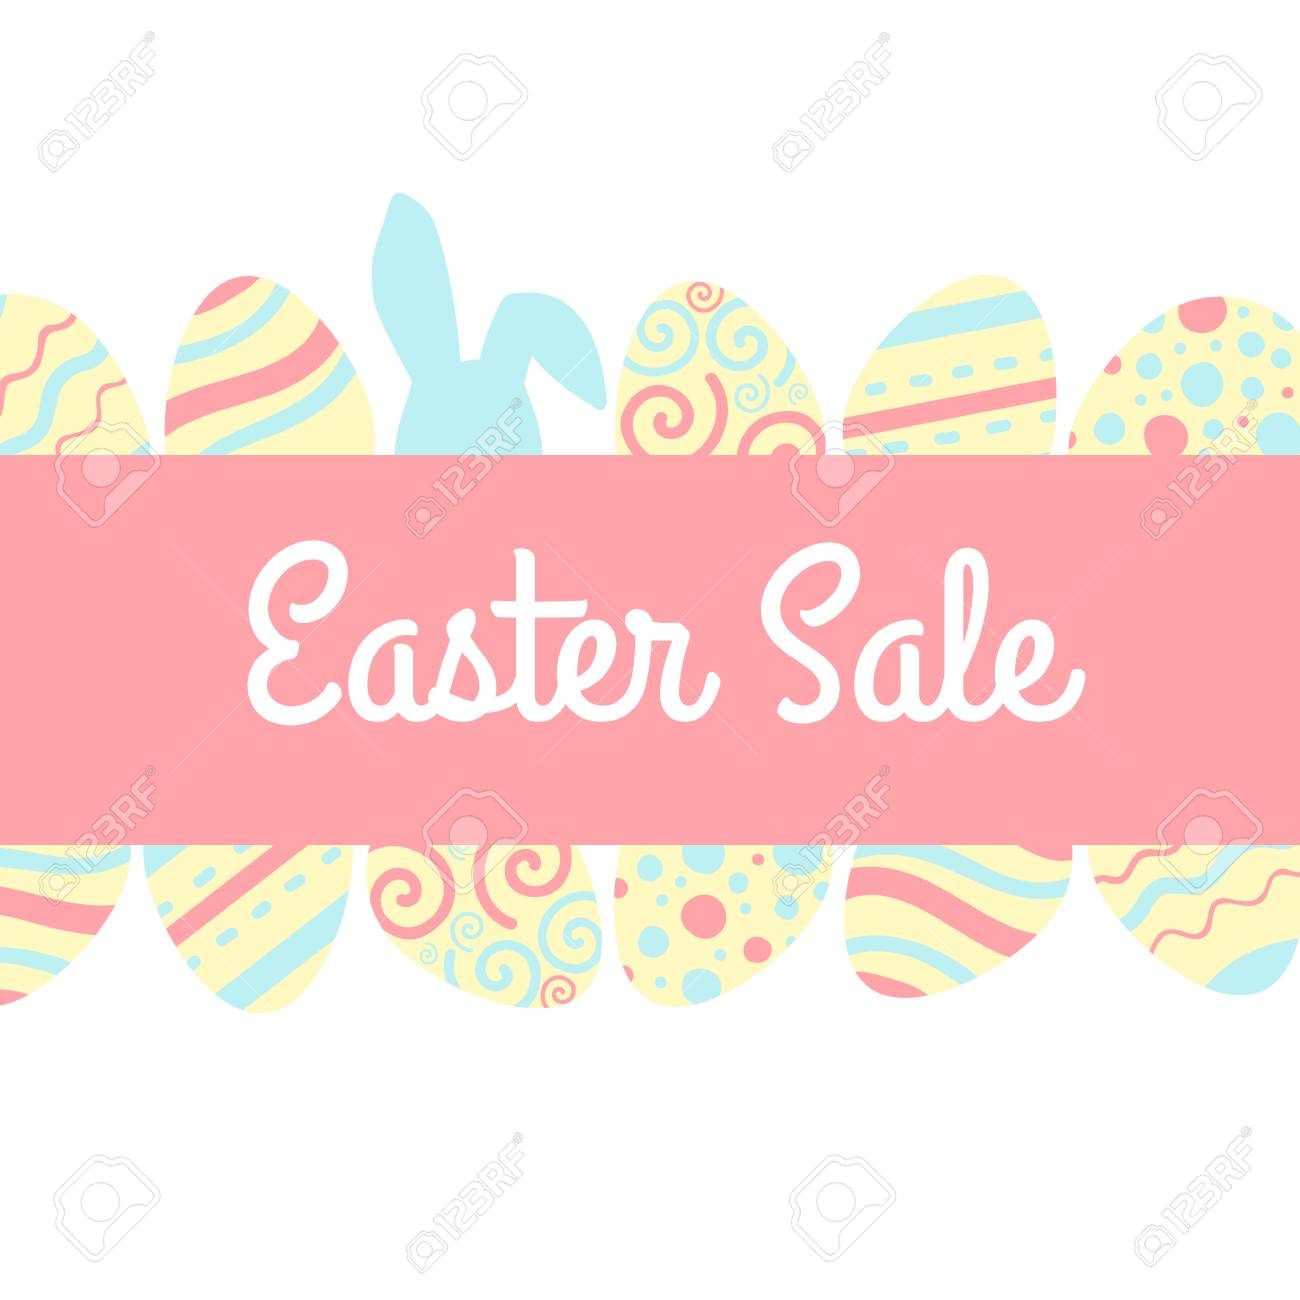 Easter sale banner with pink and blue rabbits and eggs. - 97521007